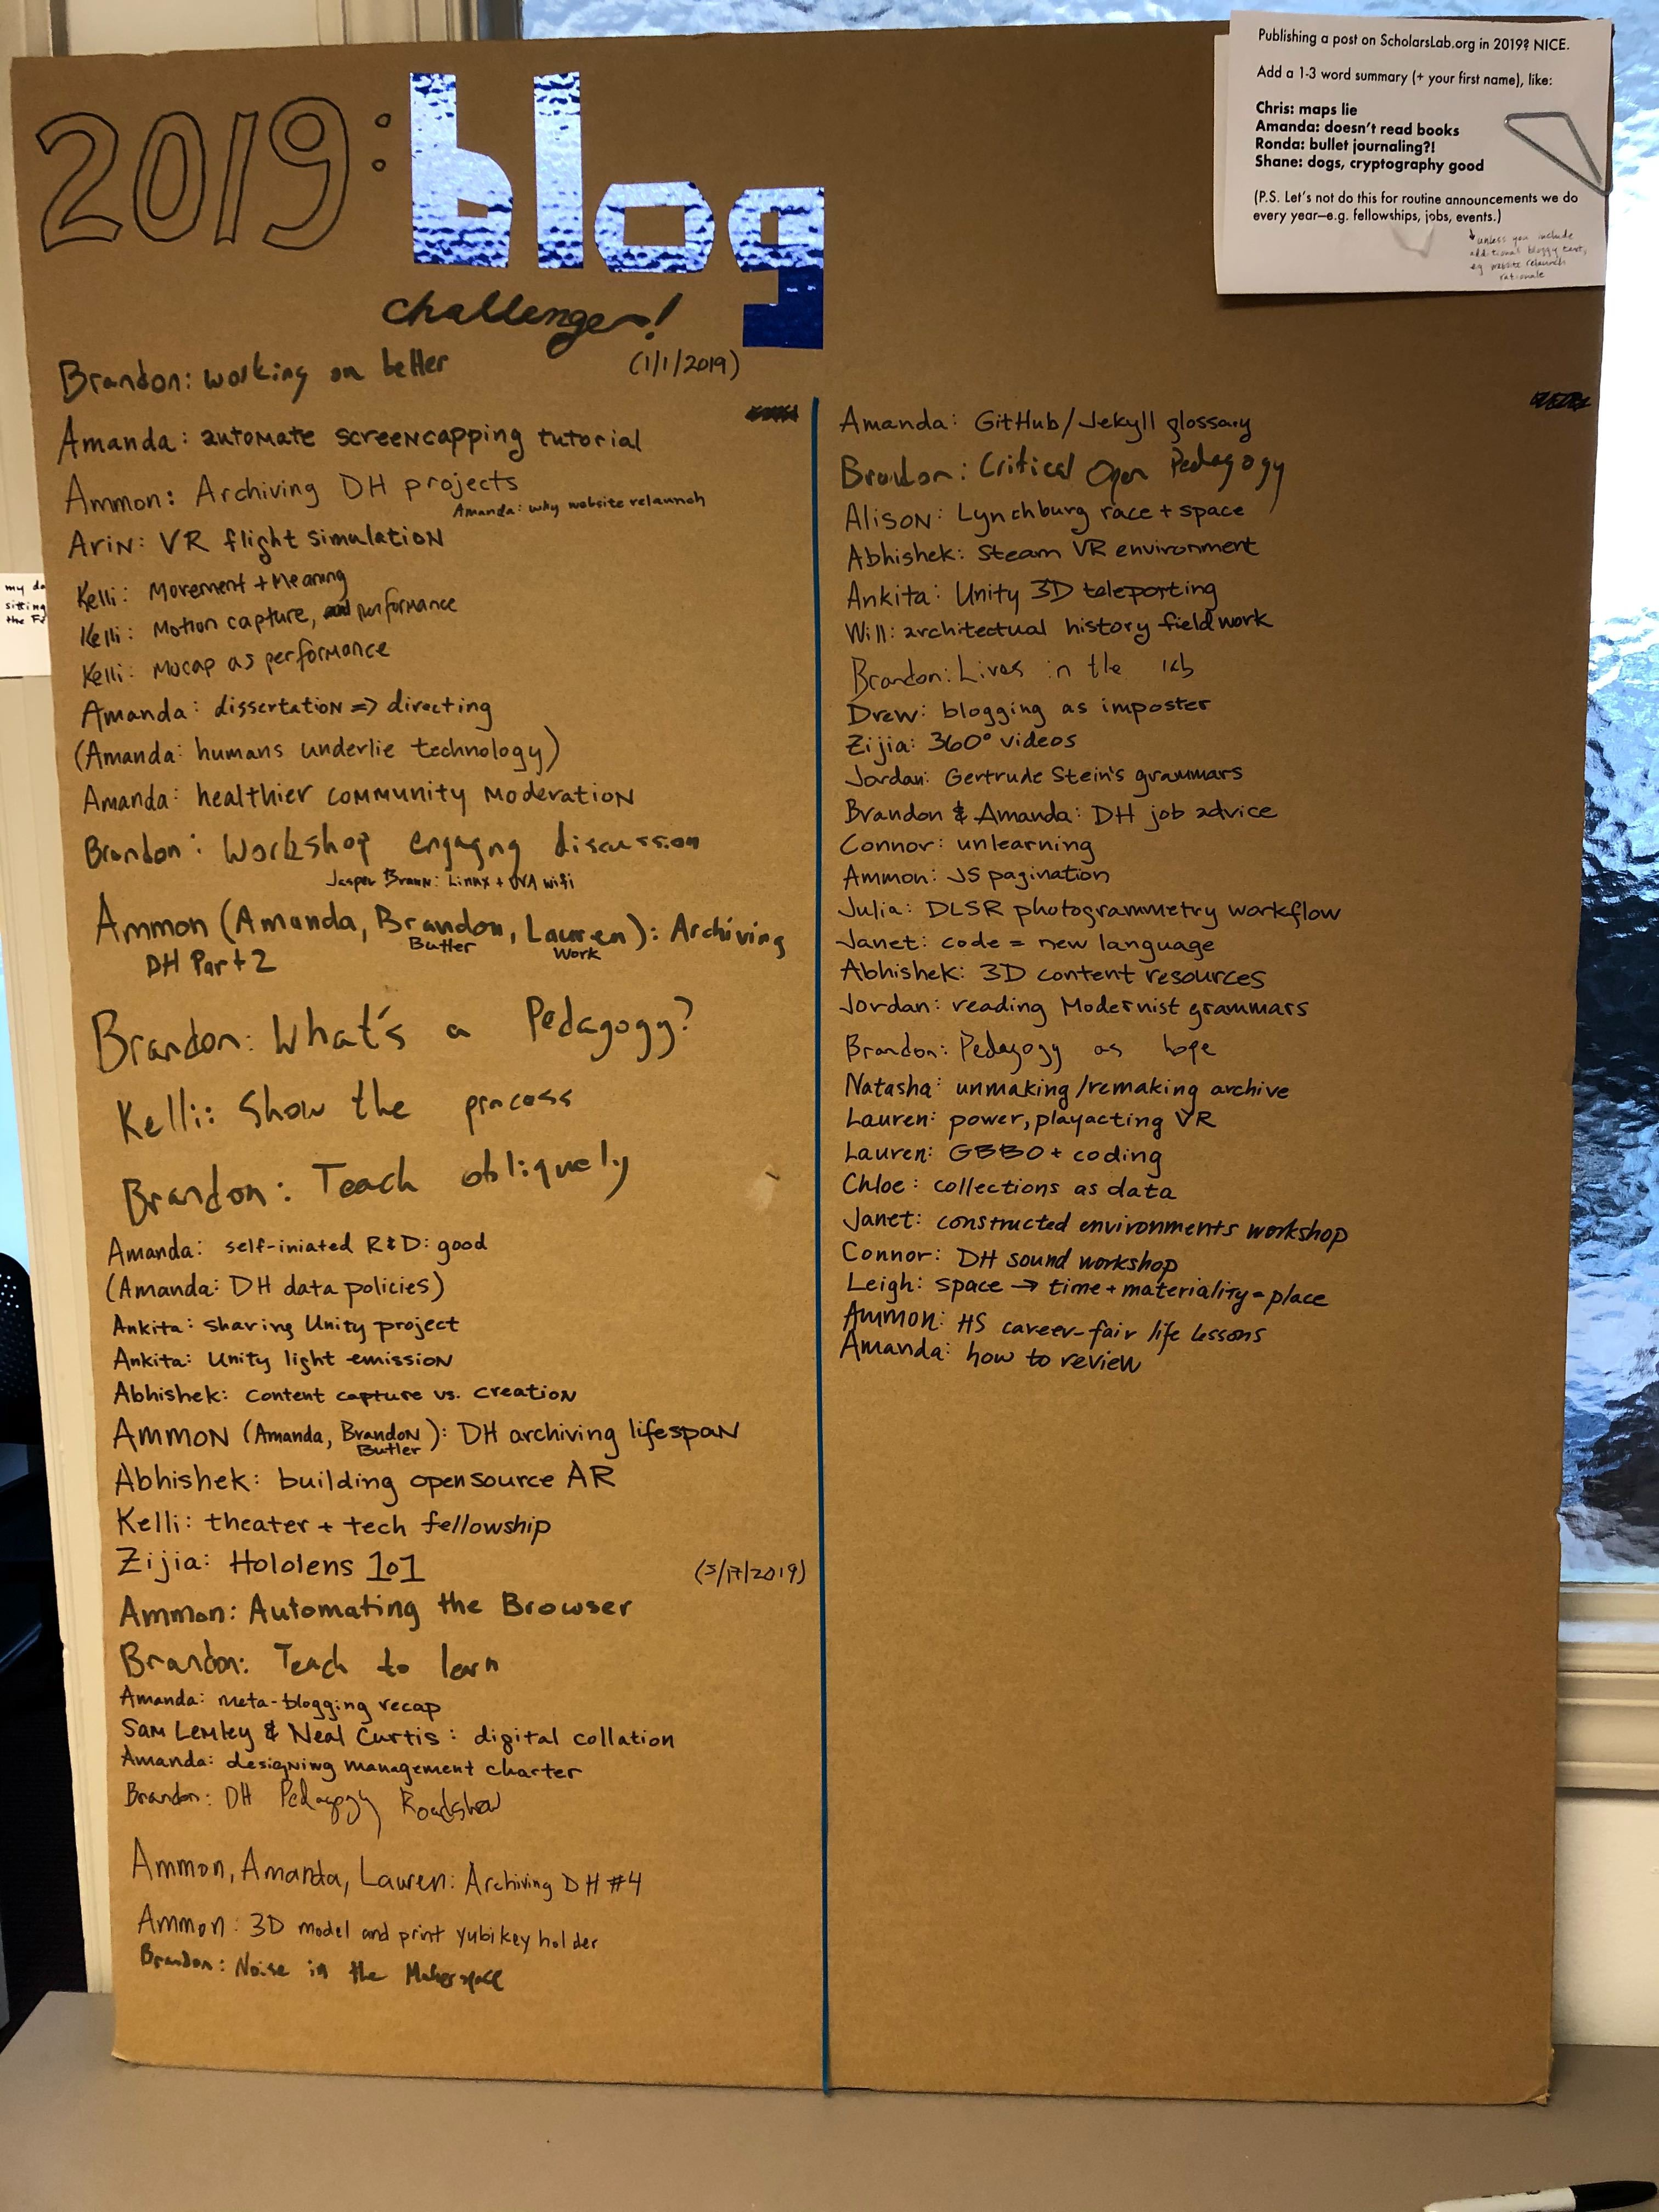 Large cardboard poster listing the authors of posts and a 3-word summary of the post content, for all essay blog posts published in 2019 on the Scholars' Lab blog